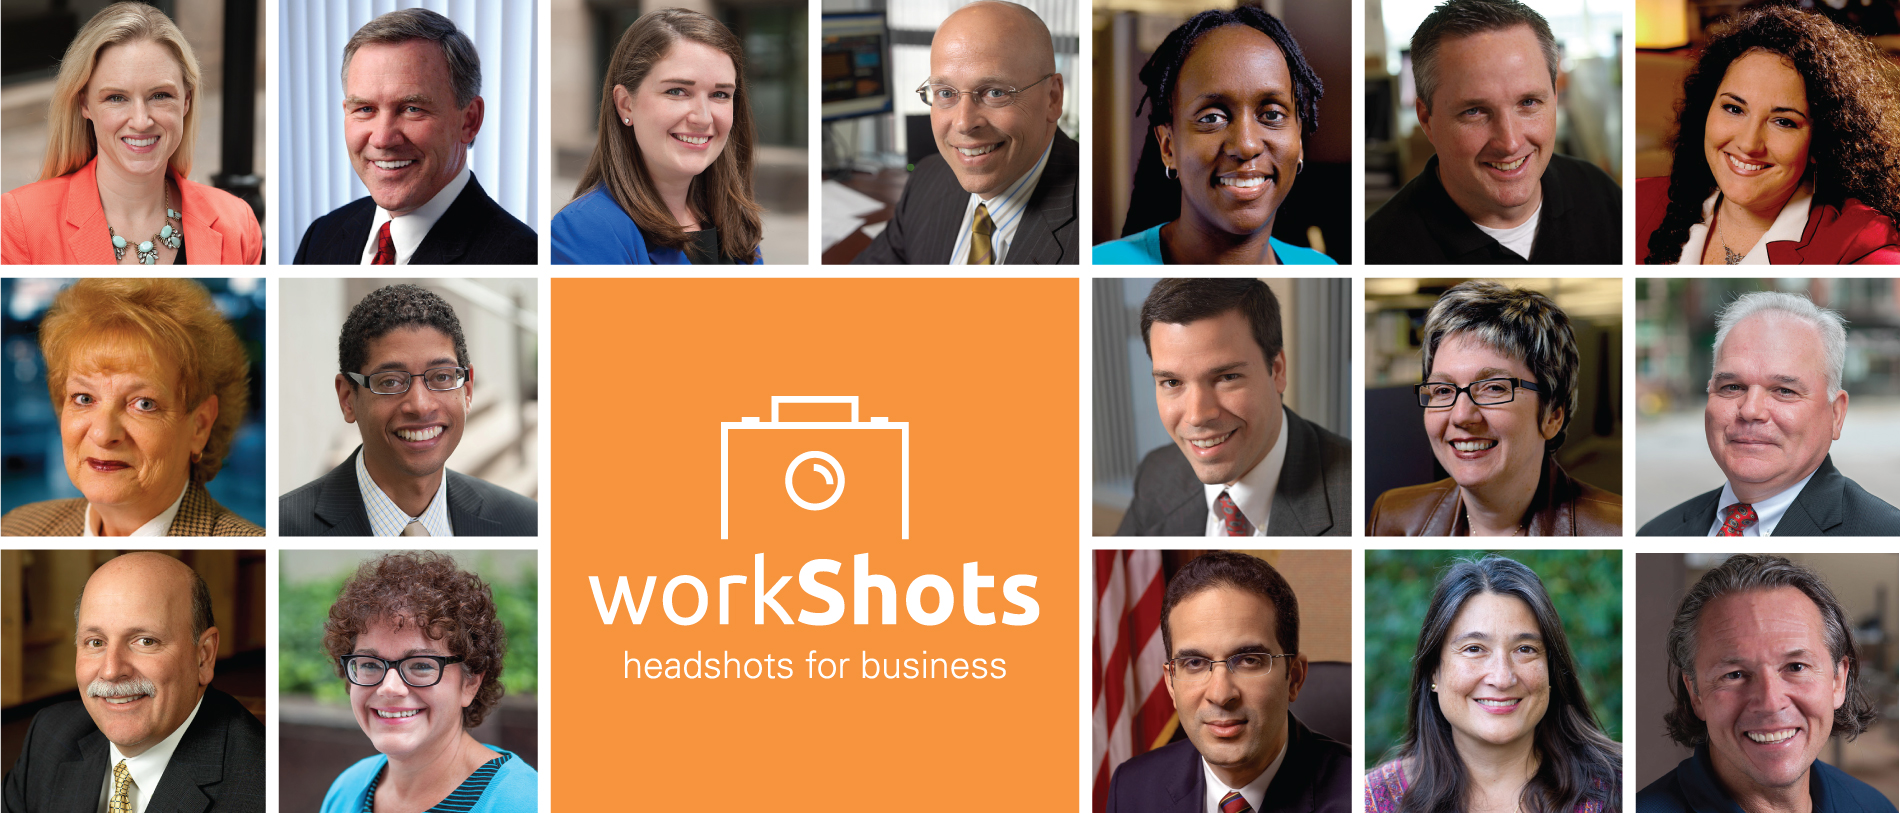 workShots - Headshots for Business